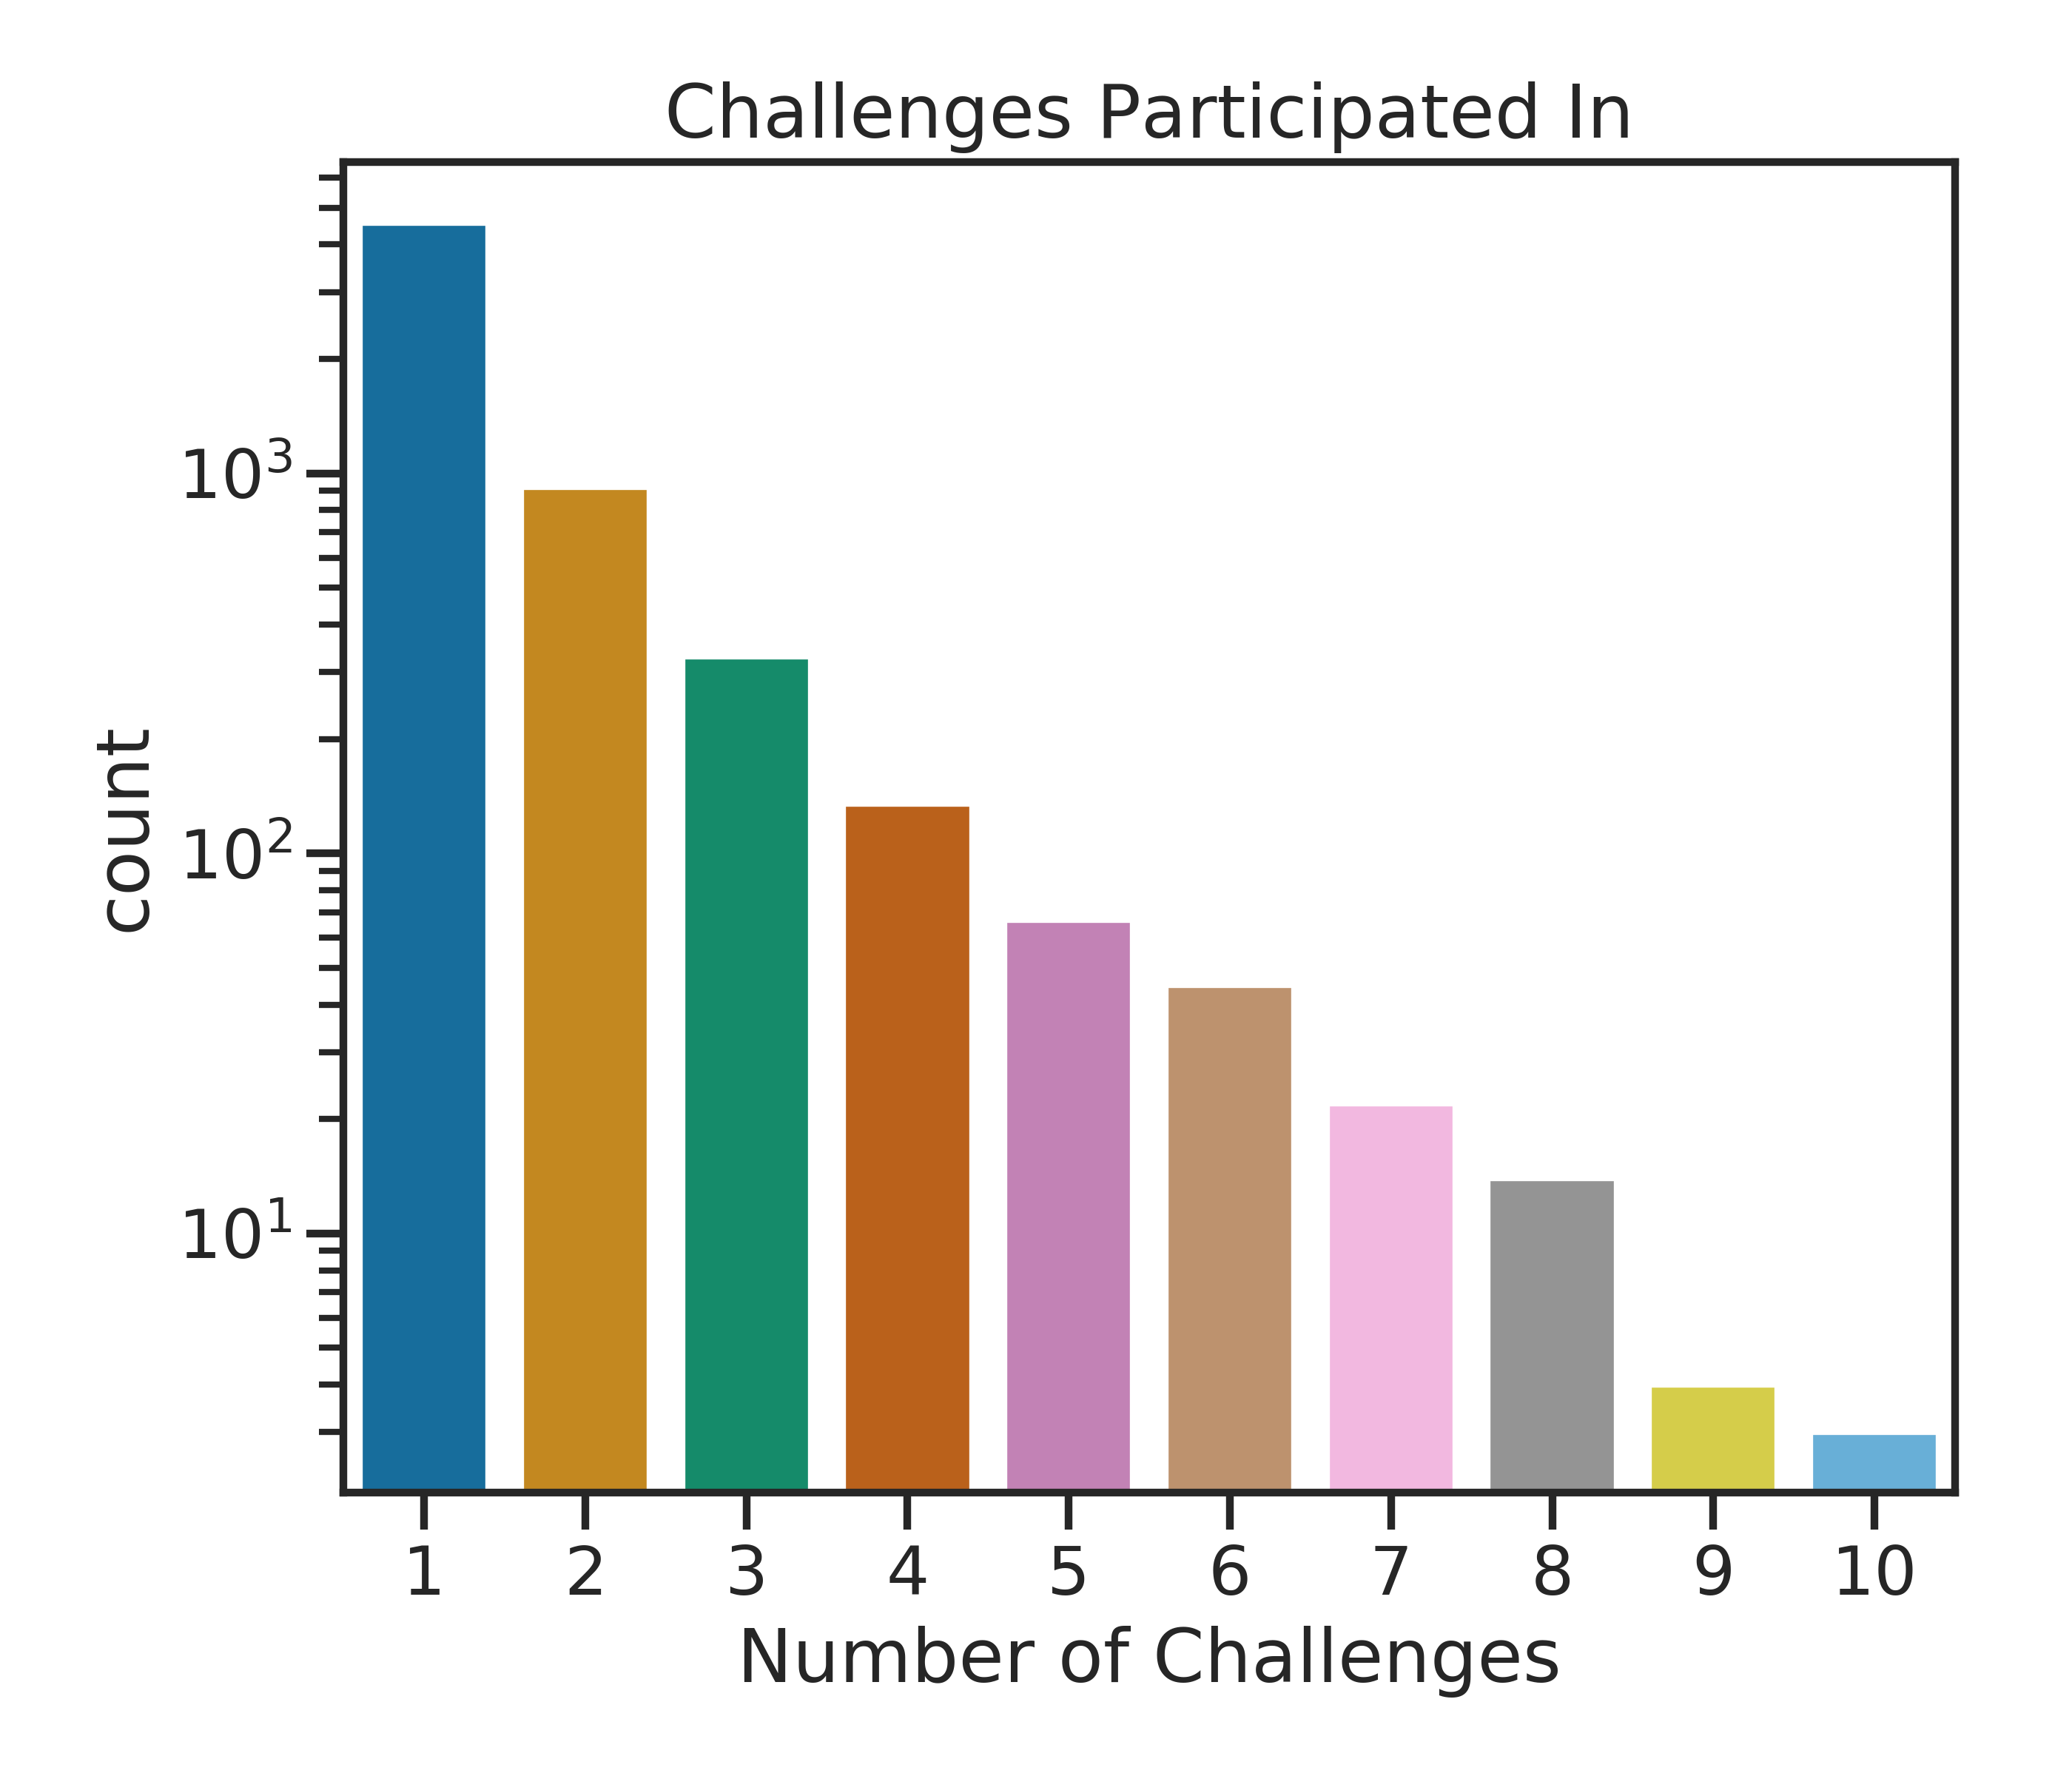 challenges partipicated in